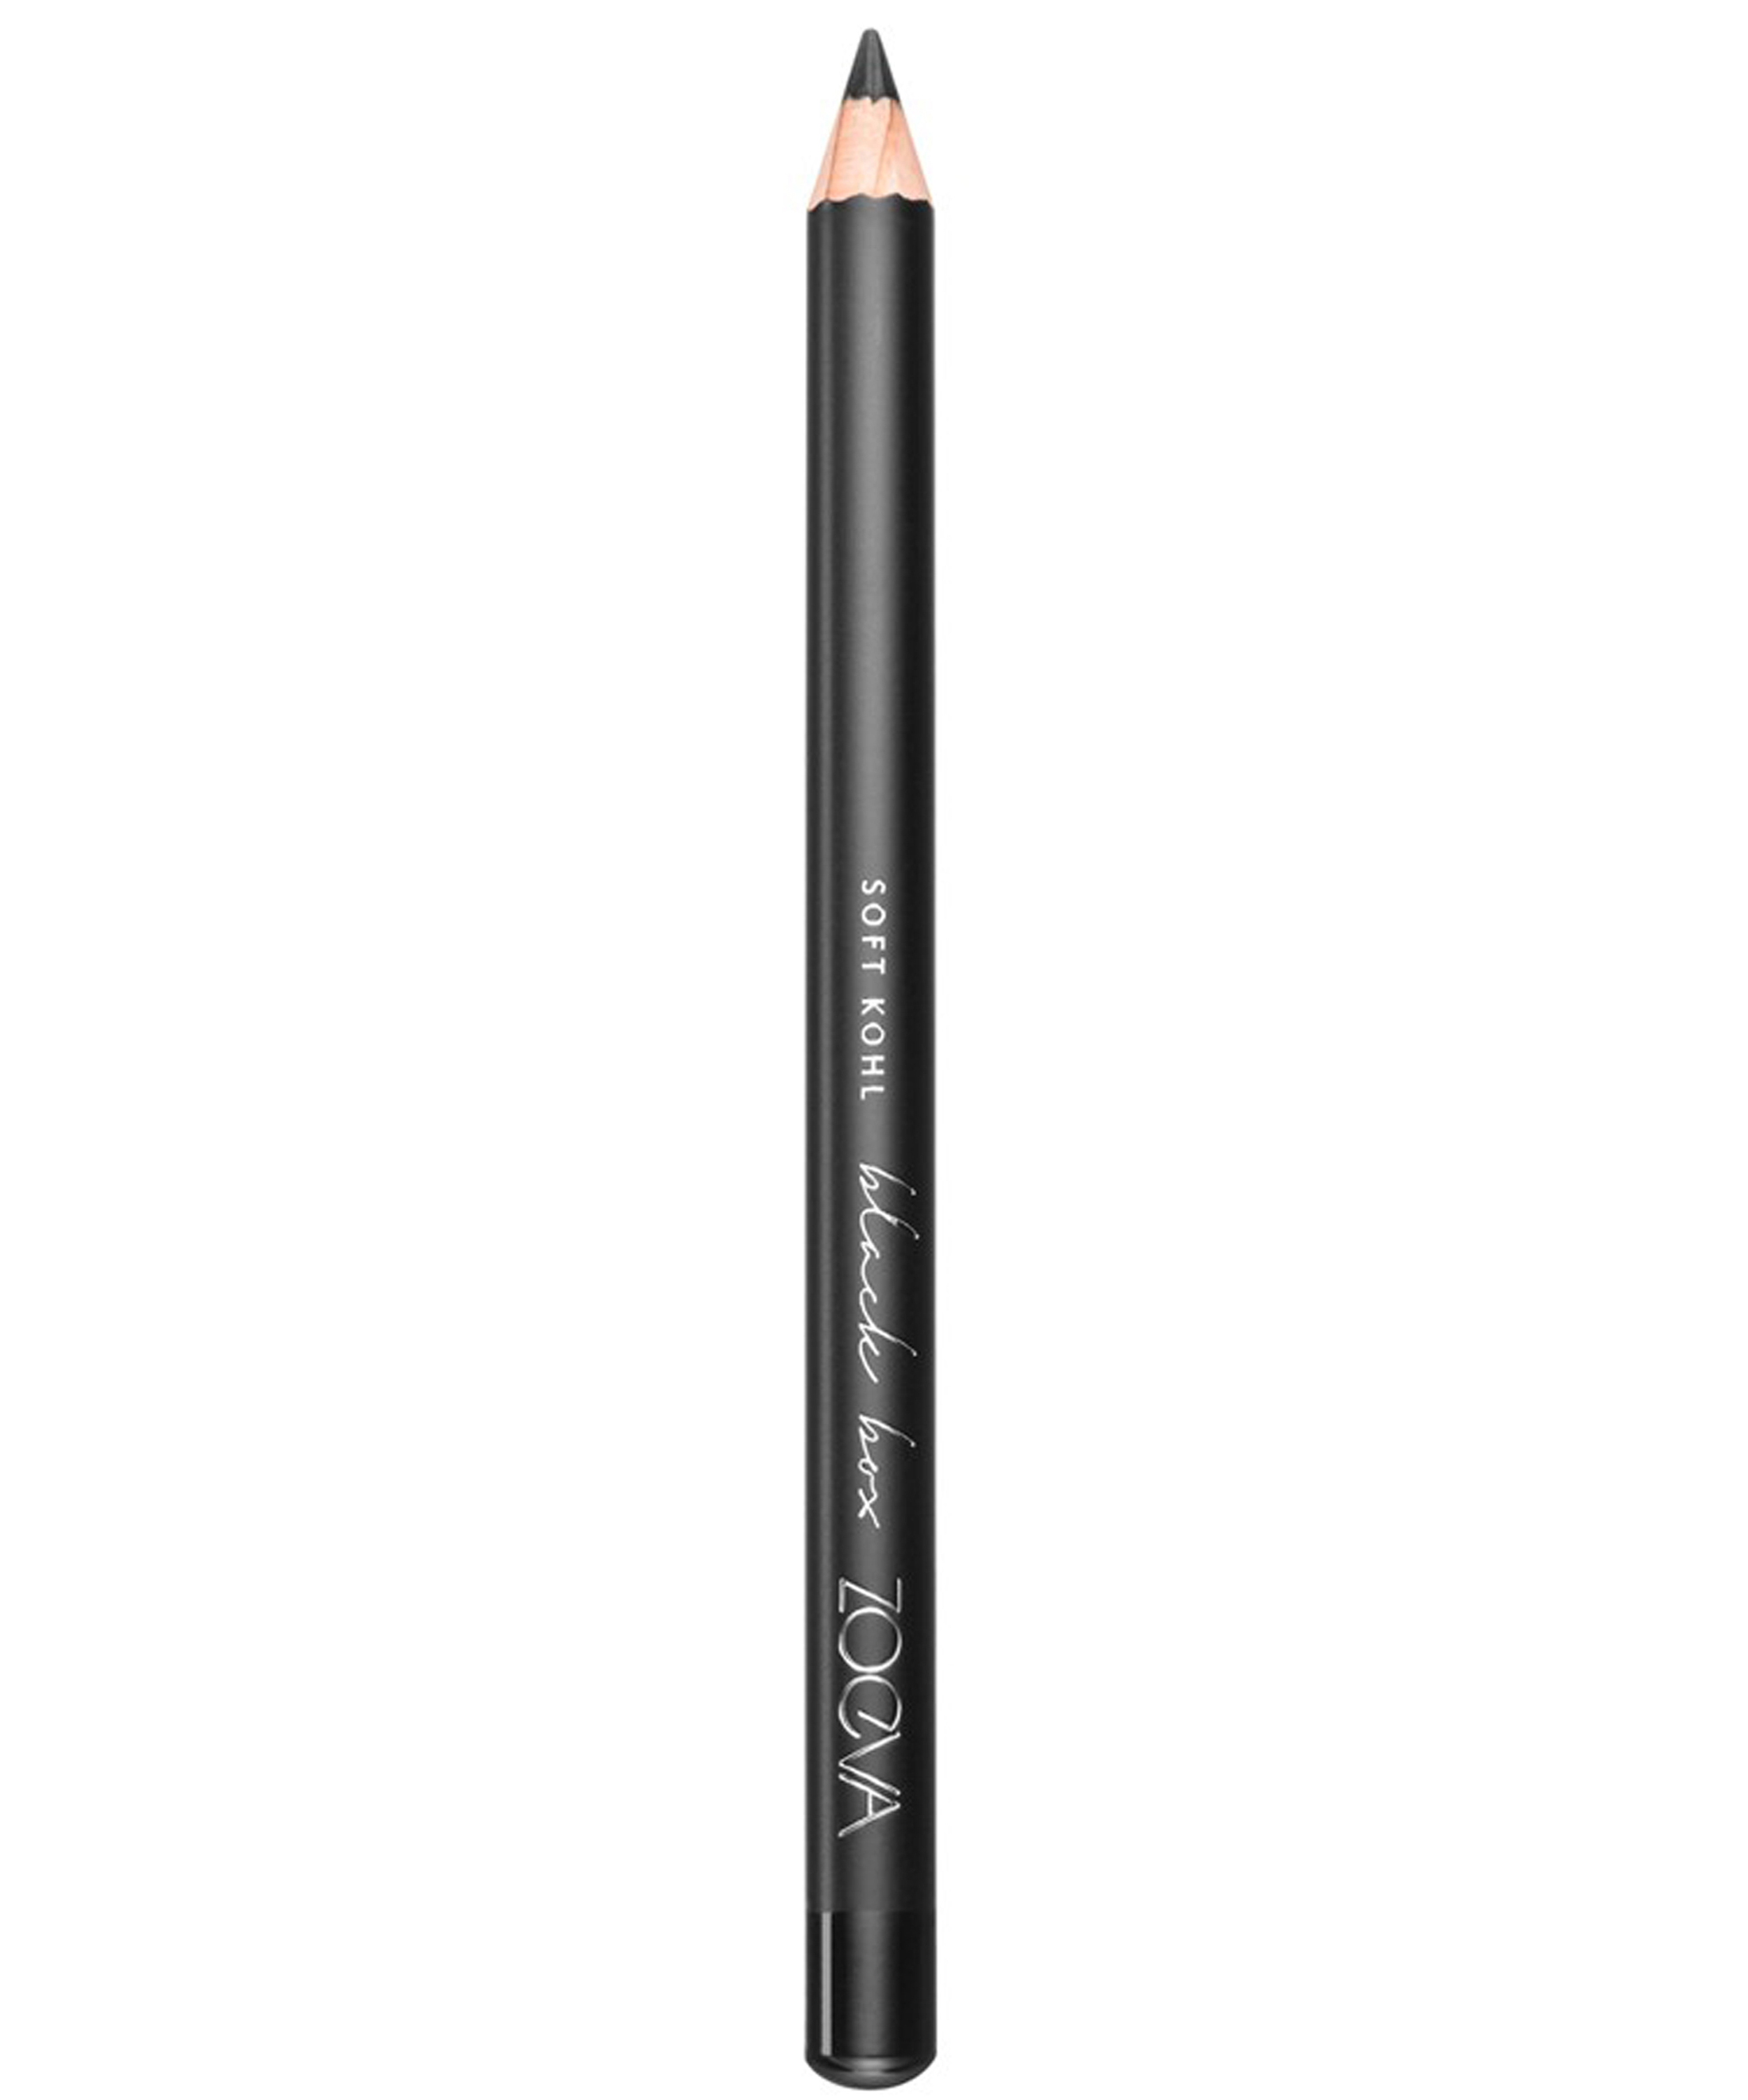 Zoeva Soft Kohl Eye Liner in Noir